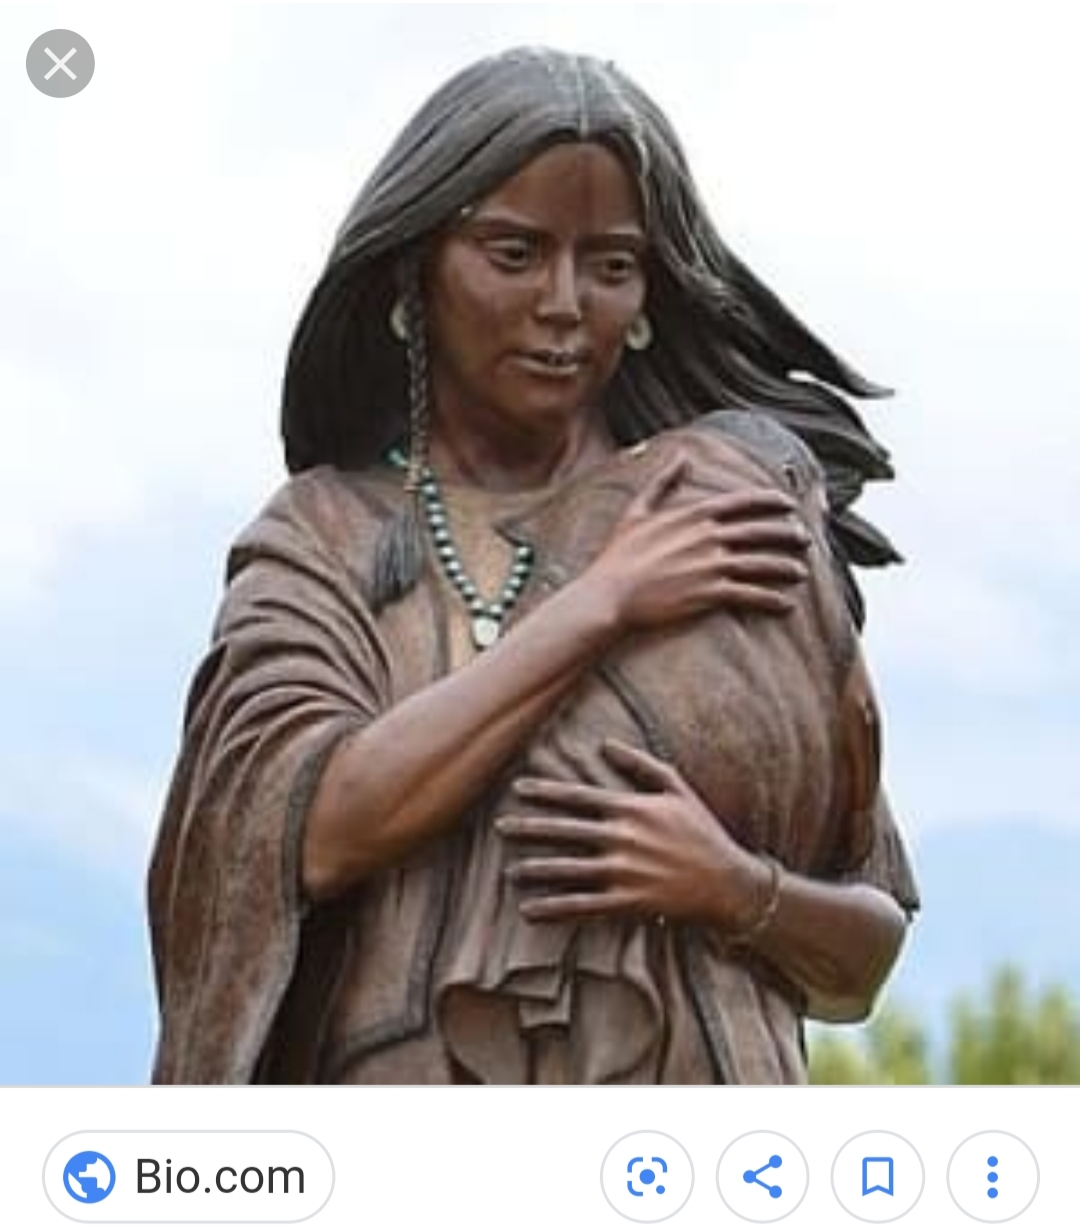 Statue of Sacagawea holding her son Jean Baptiste